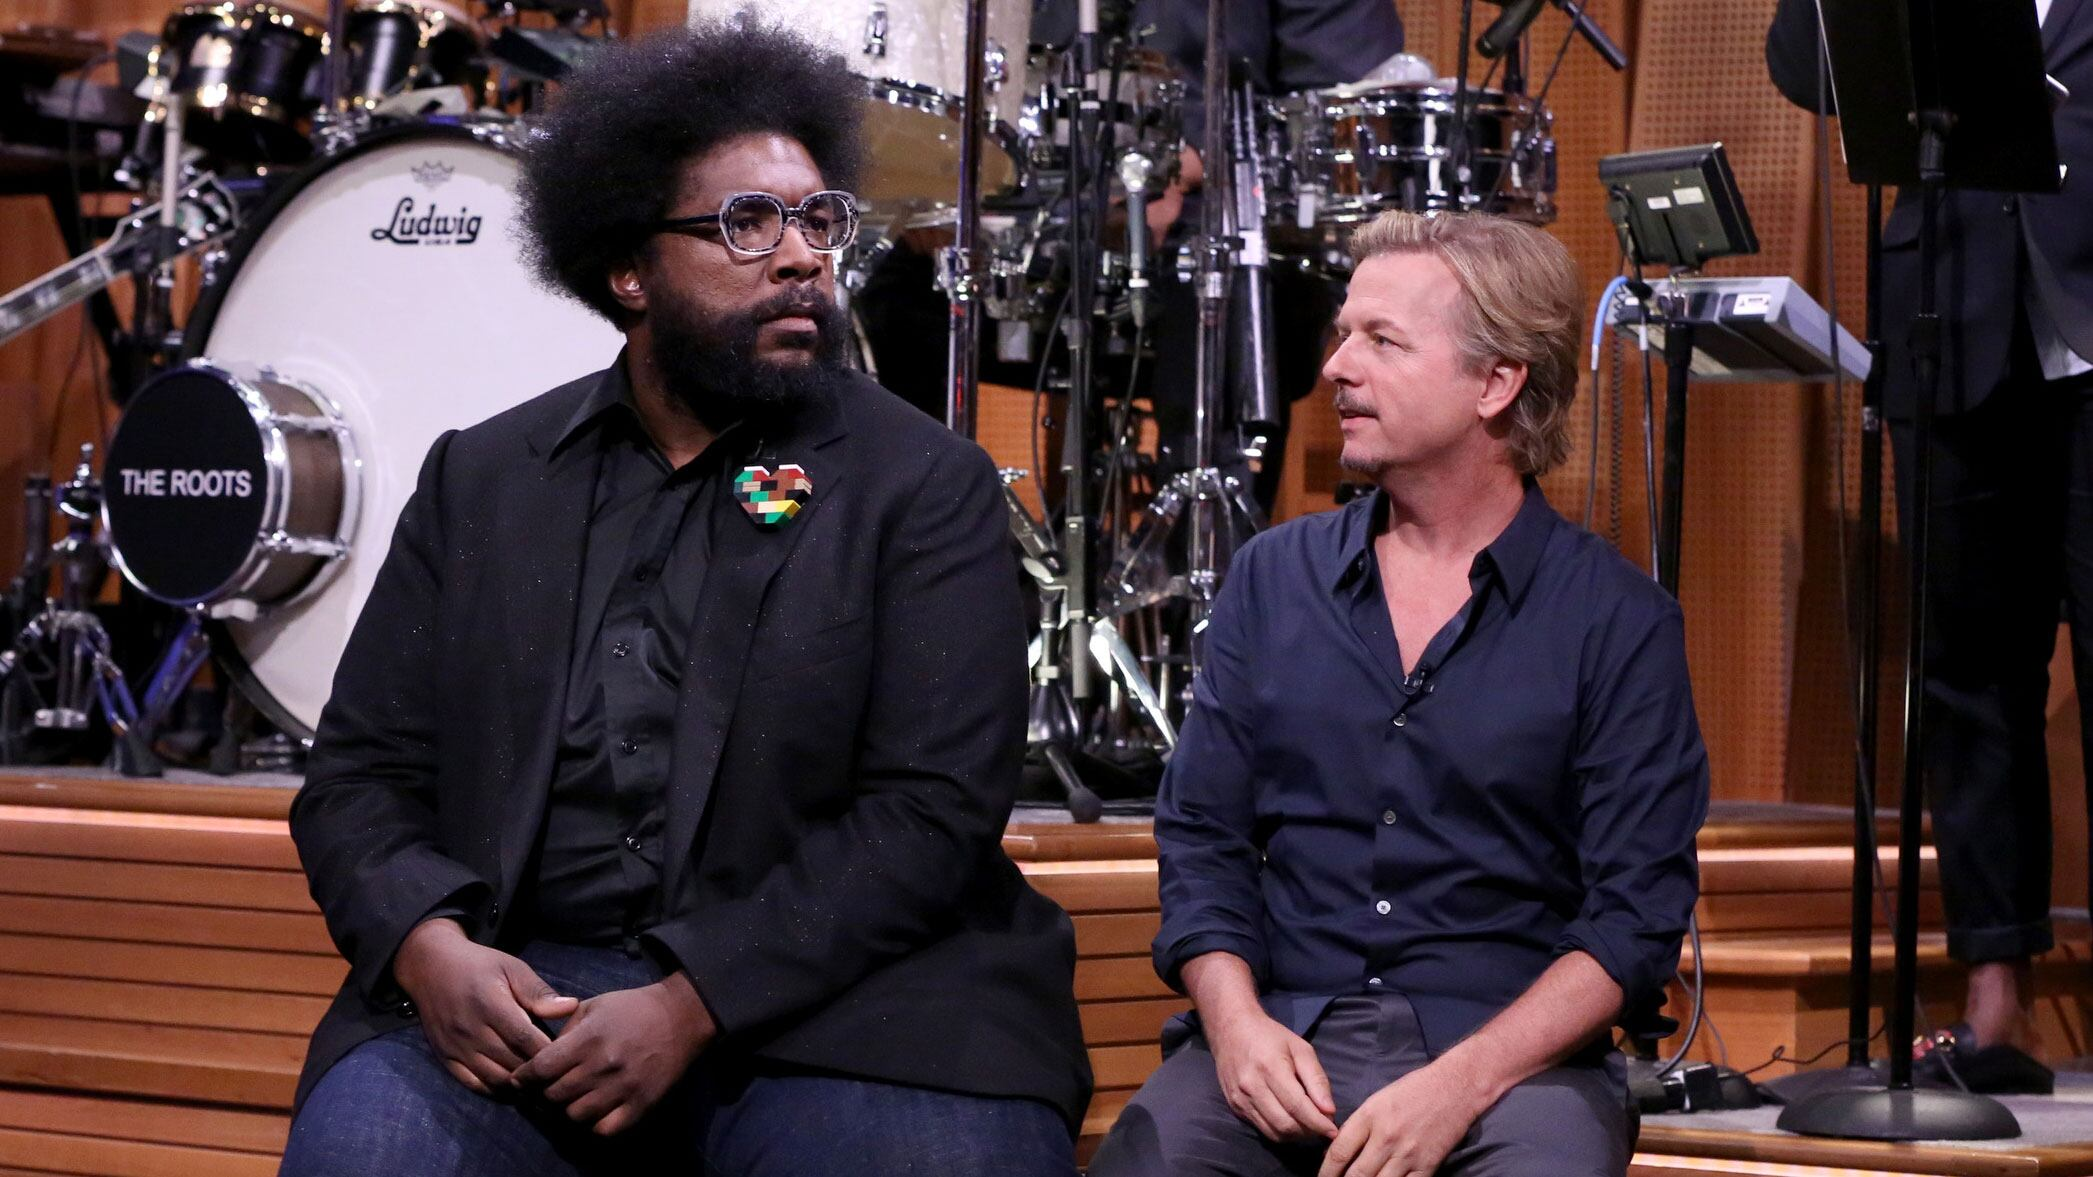 The Roots Reenact Bachelor in Paradise with David Spade